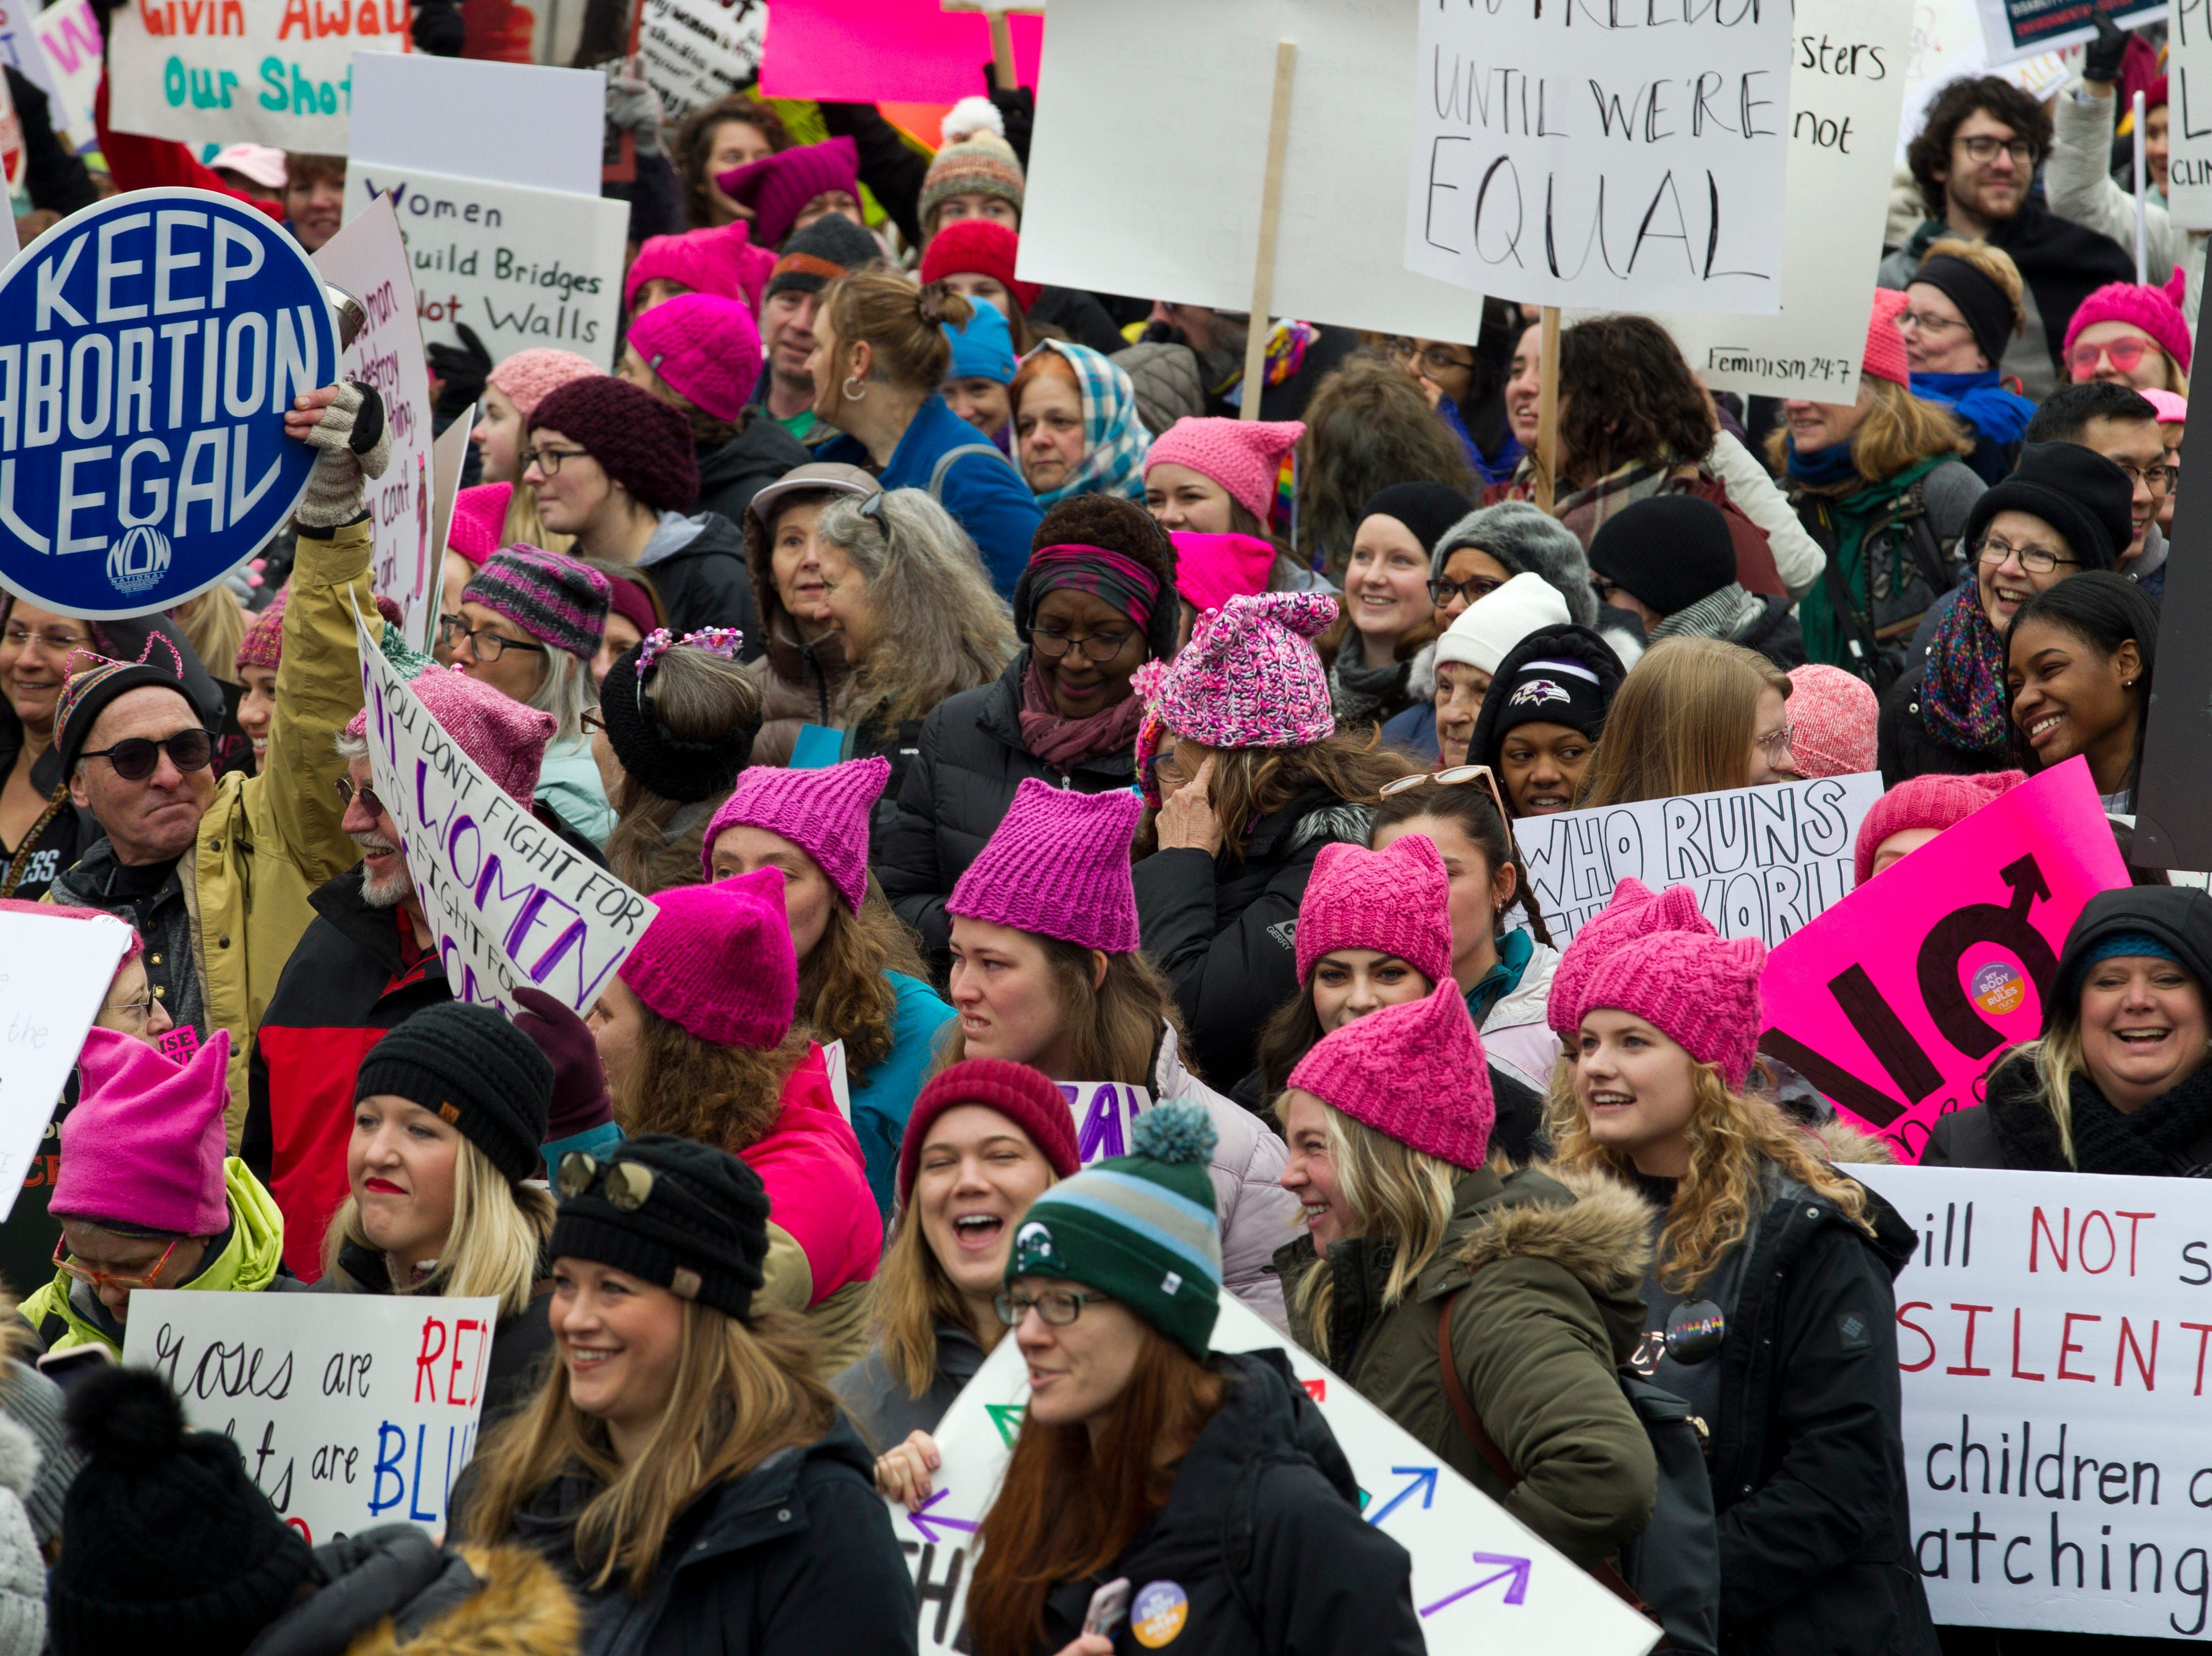 Demonstrators hold up their banners as they march on Pennsylvania Avenue during the Women's March in Washington on Saturday, Jan. 19, 2019.